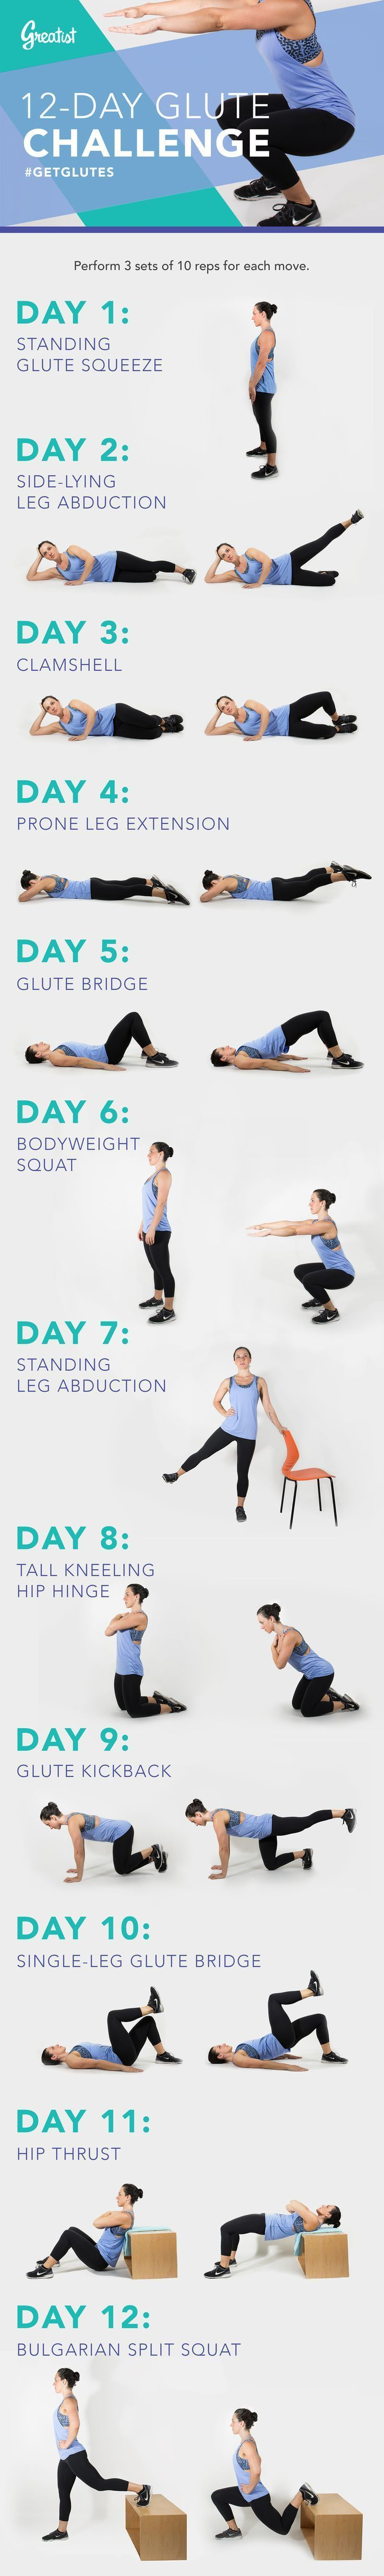 I can't do the standing up exercises (yet), but the others are going to help a lot in recovering the lost muscles in my leg.